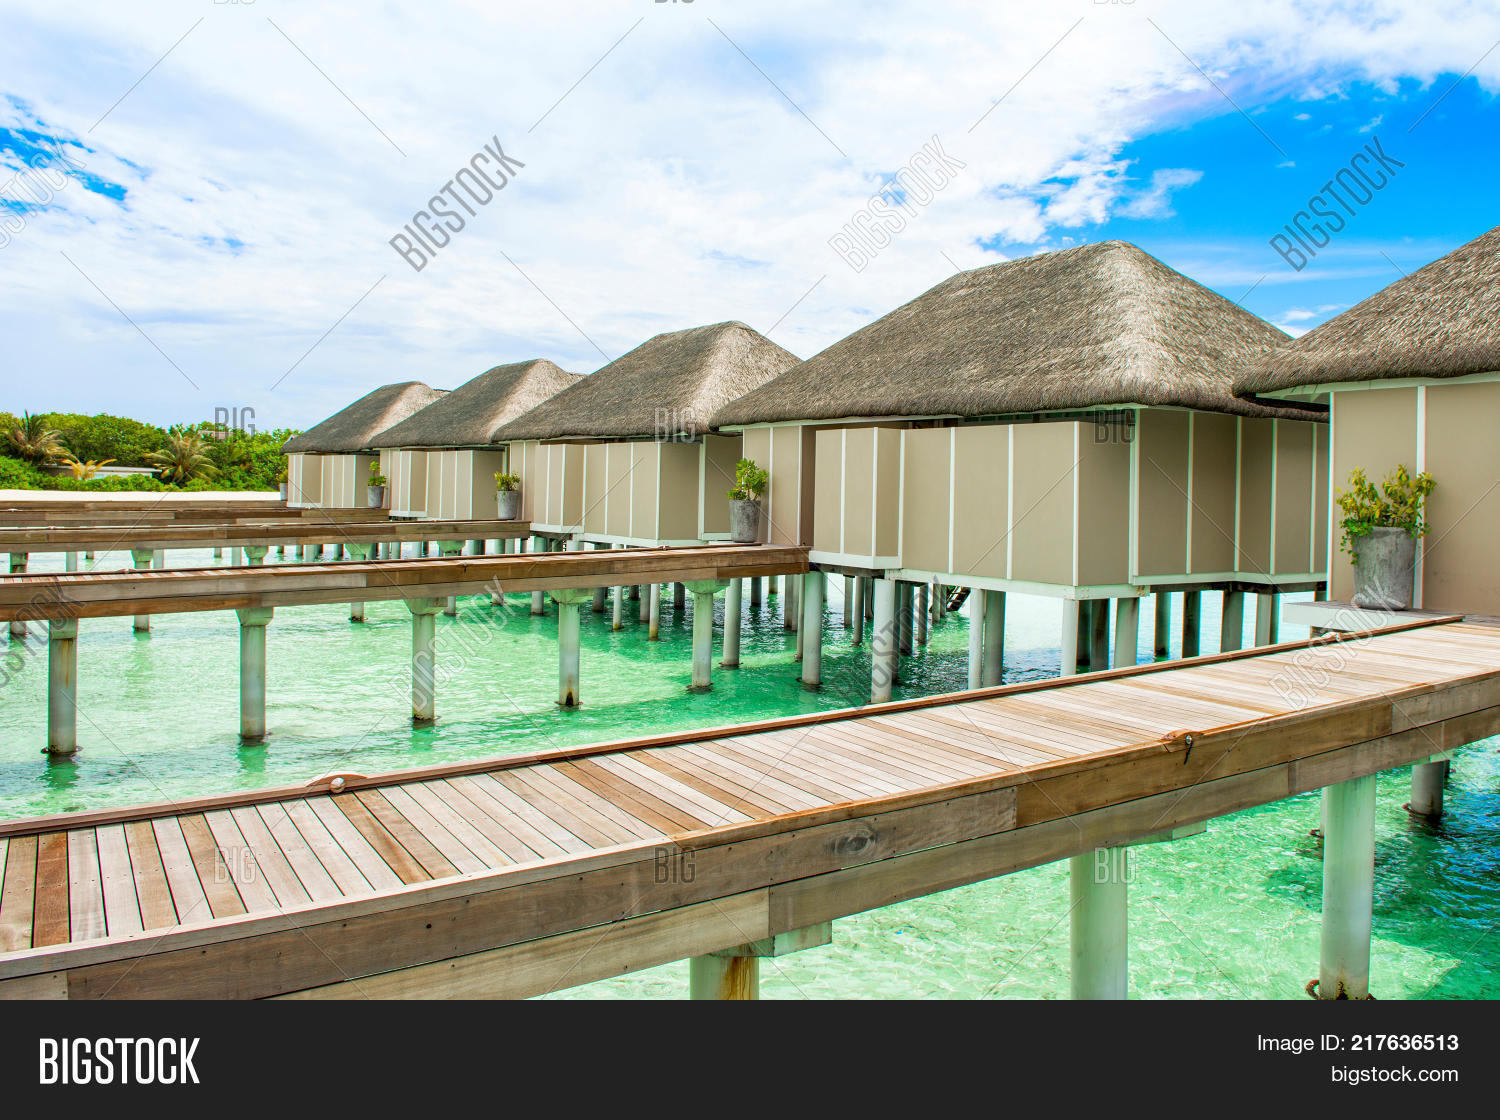 High Quality Wooden Villas Over Water Of The Indian Ocean, Maldives